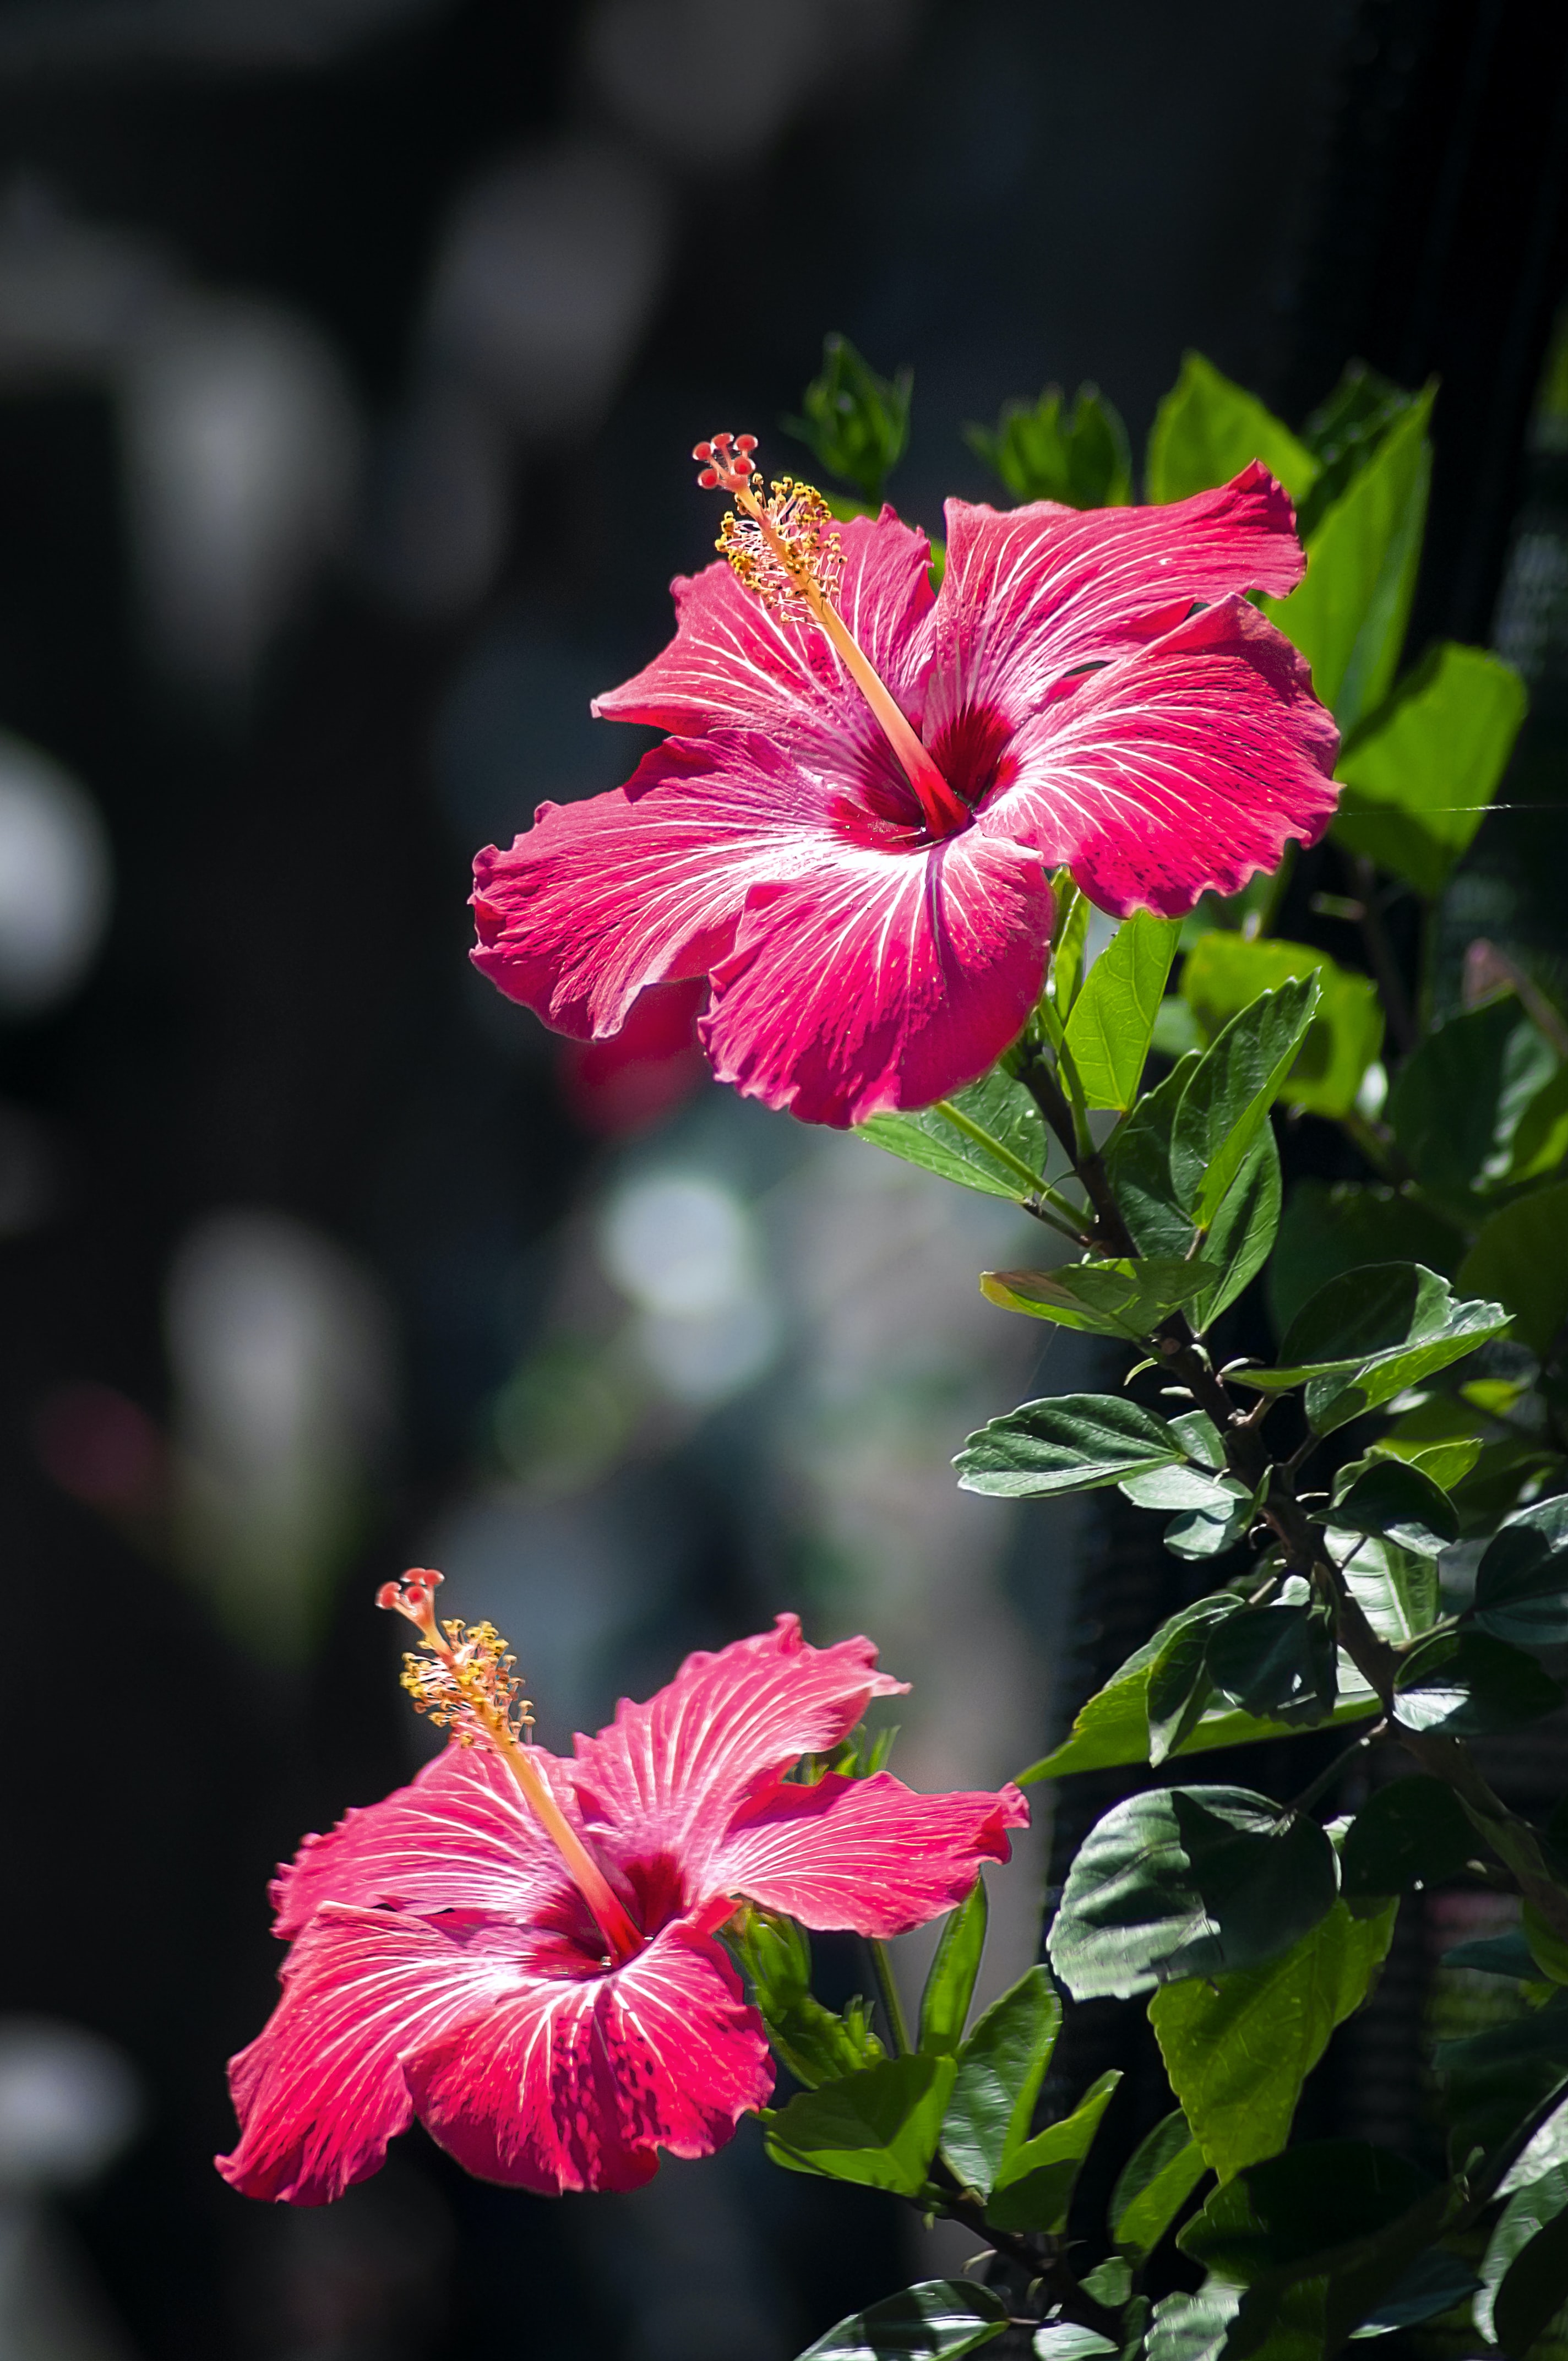 Two Pink Hibiscus Flowers Photo Free Image On Unsplash